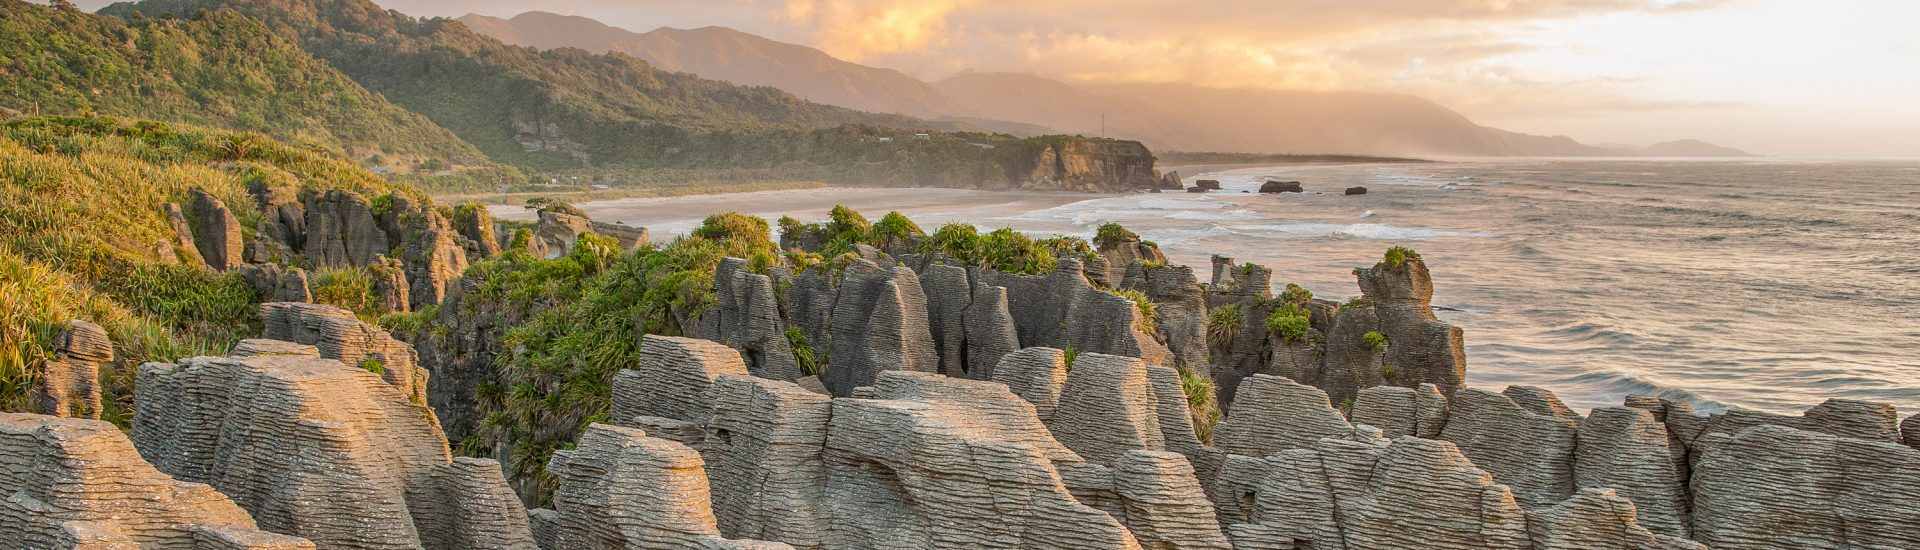 Sunset at Pancake Rocks, South Island, New Zealand, things to do in New Zealand